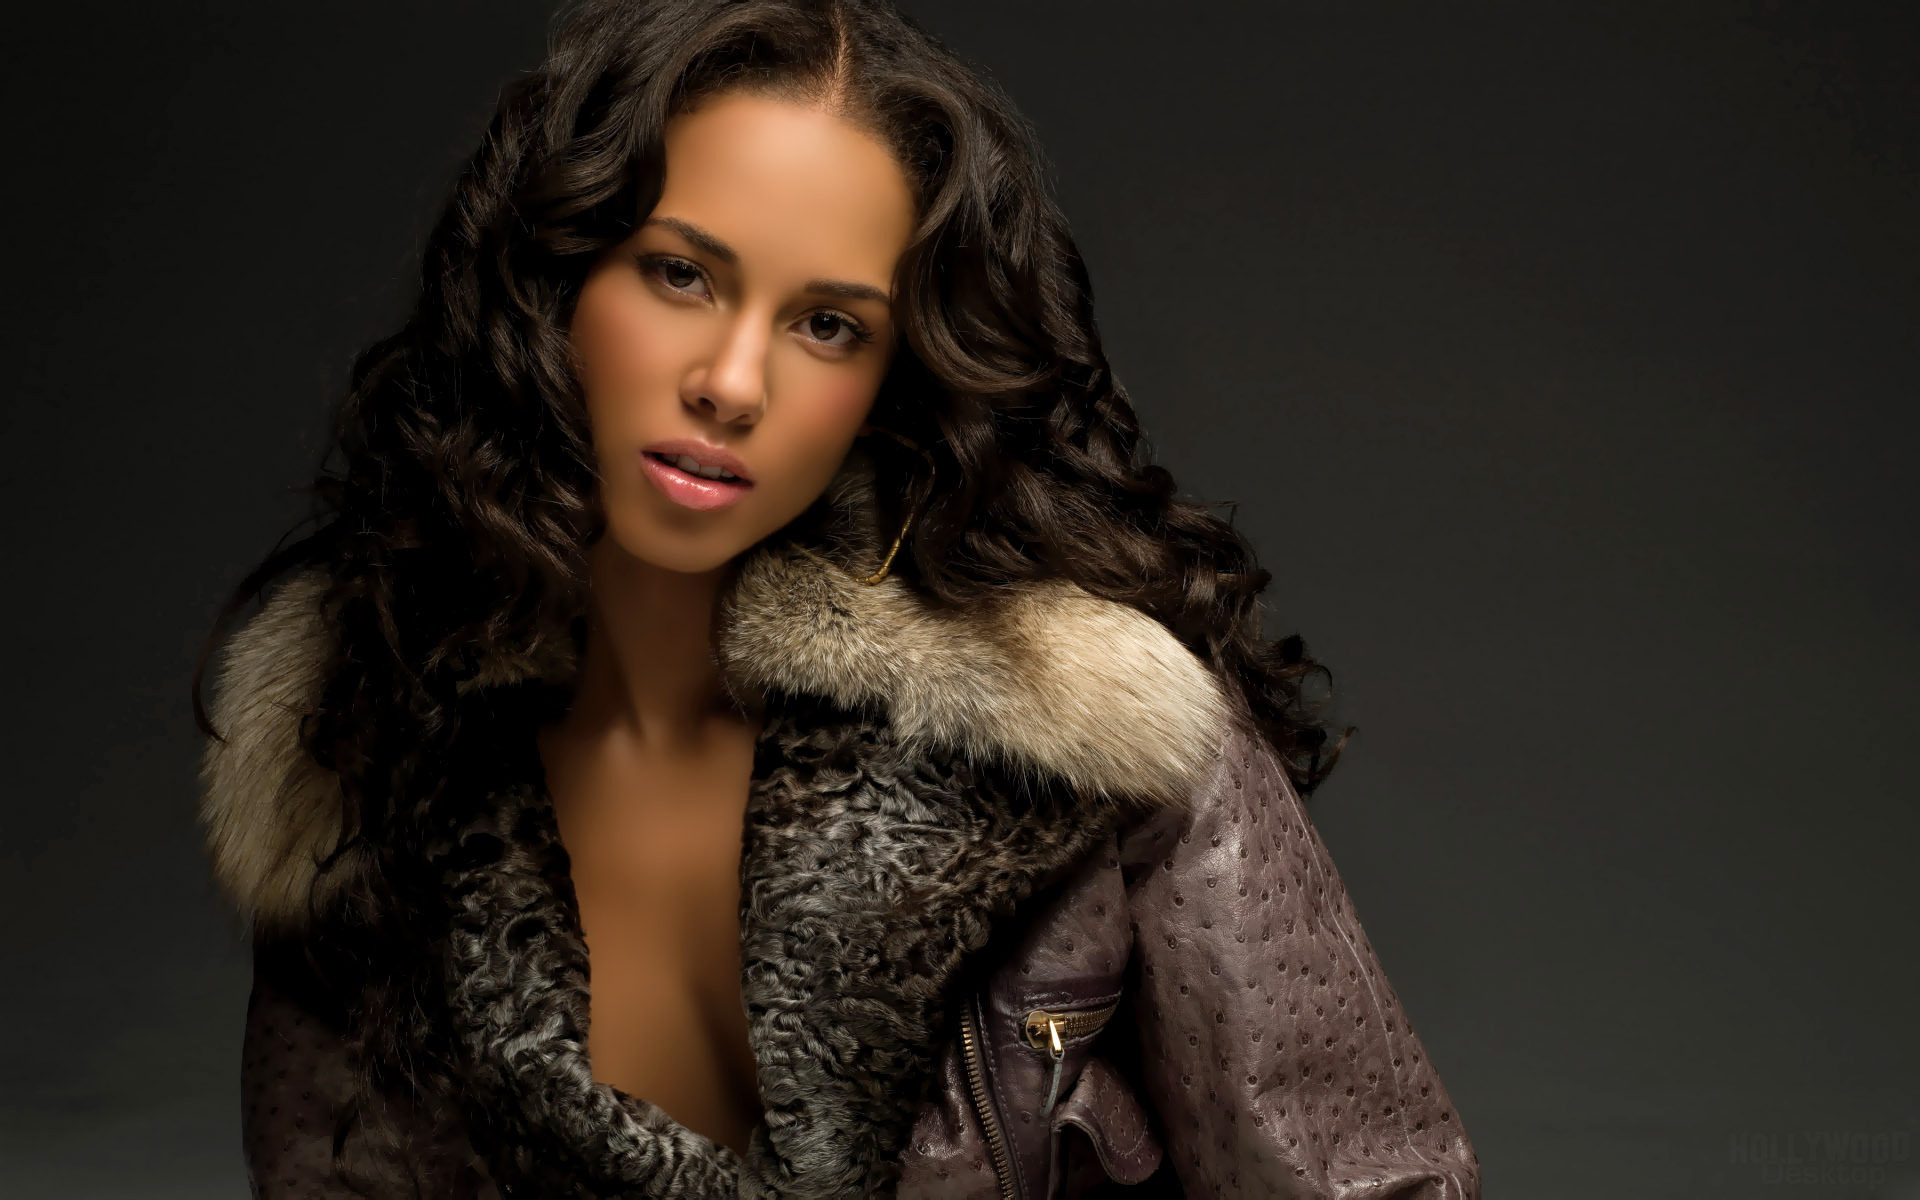 Alicia Keys Alicia Keys in Fur-Rimmed Coat [1920x1200]